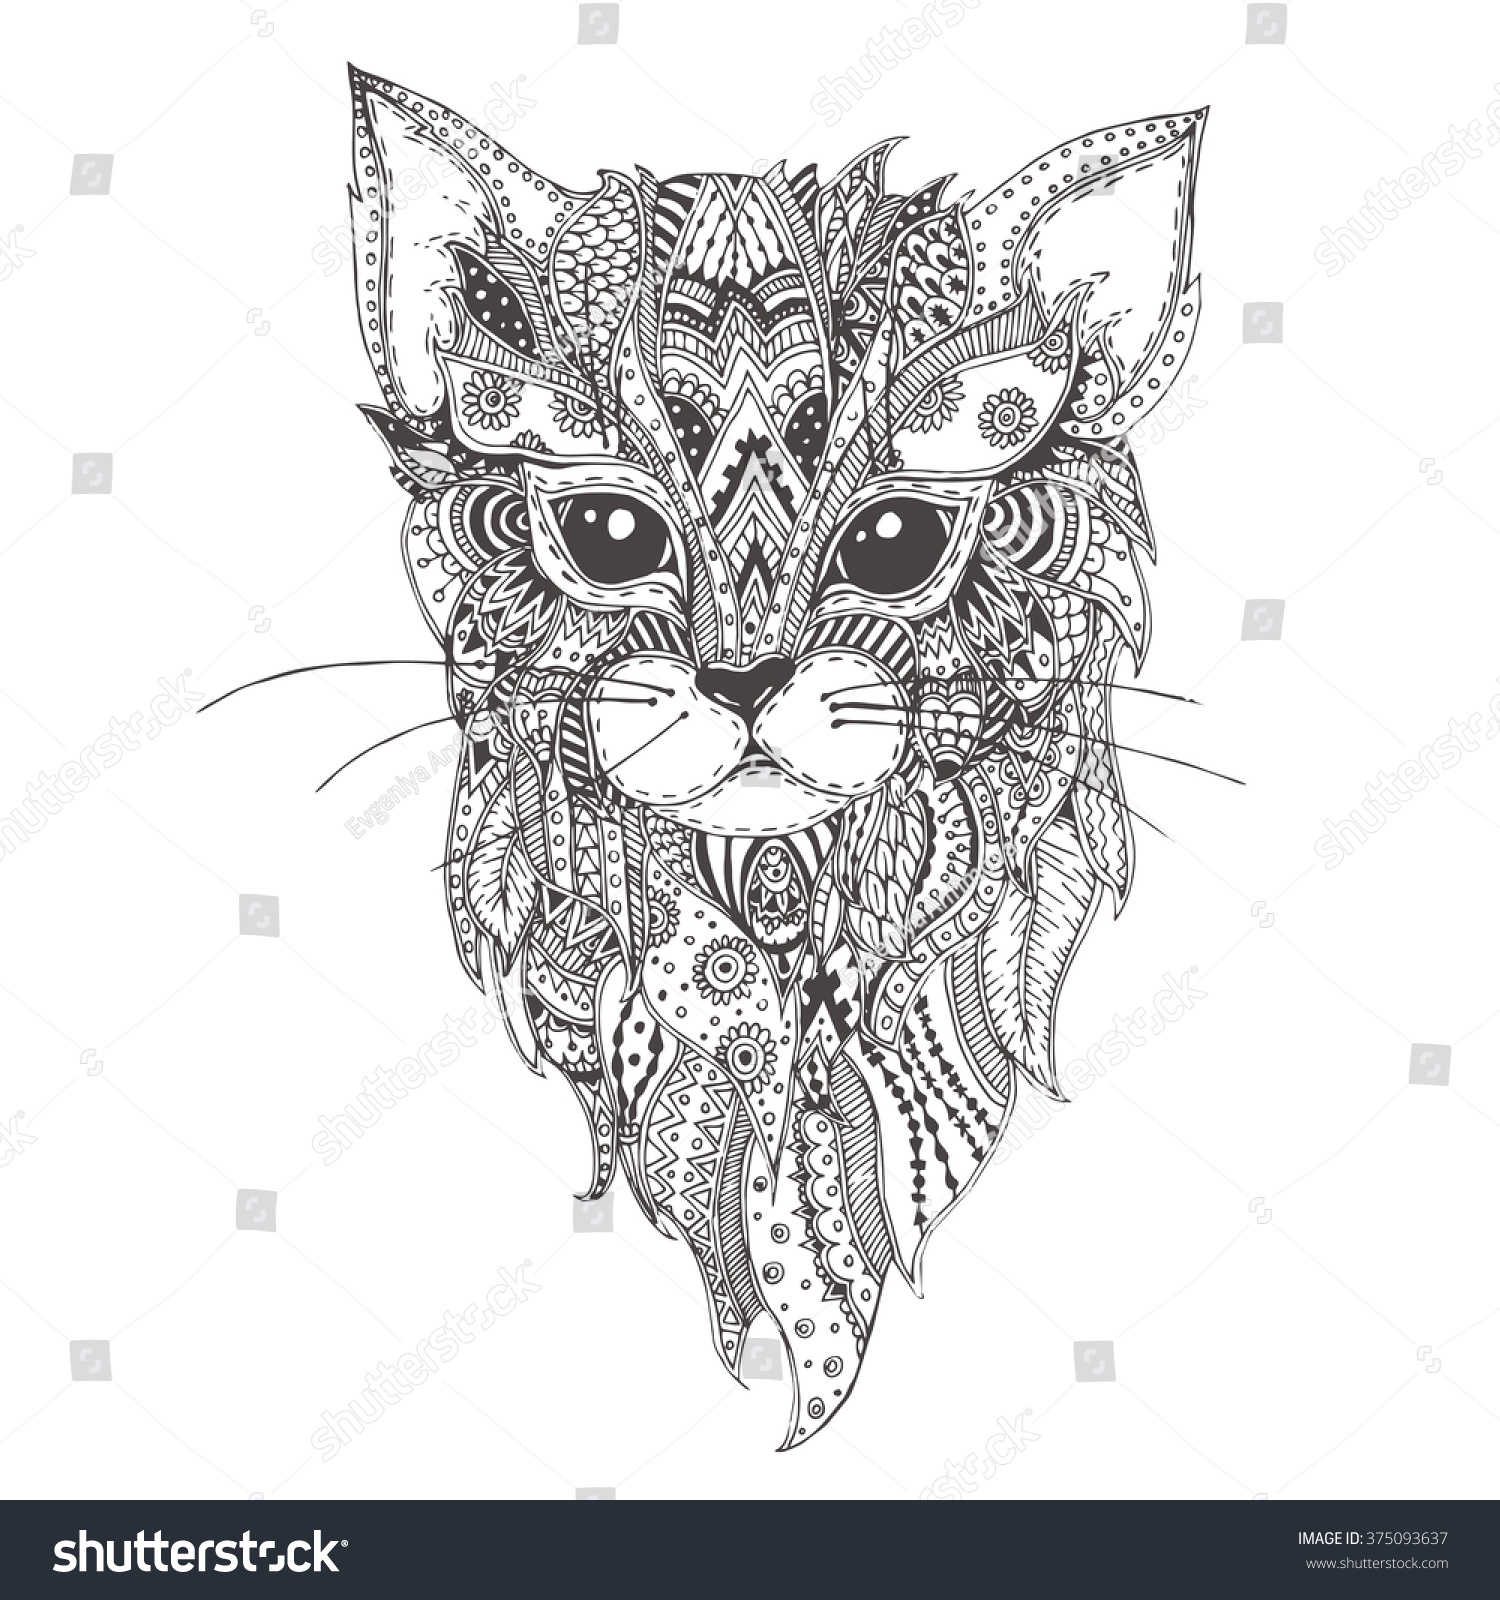 Zen cat coloring page - Hand Drawn Cat With Ethnic Floral Doodle Pattern Coloring Page Zendala Design